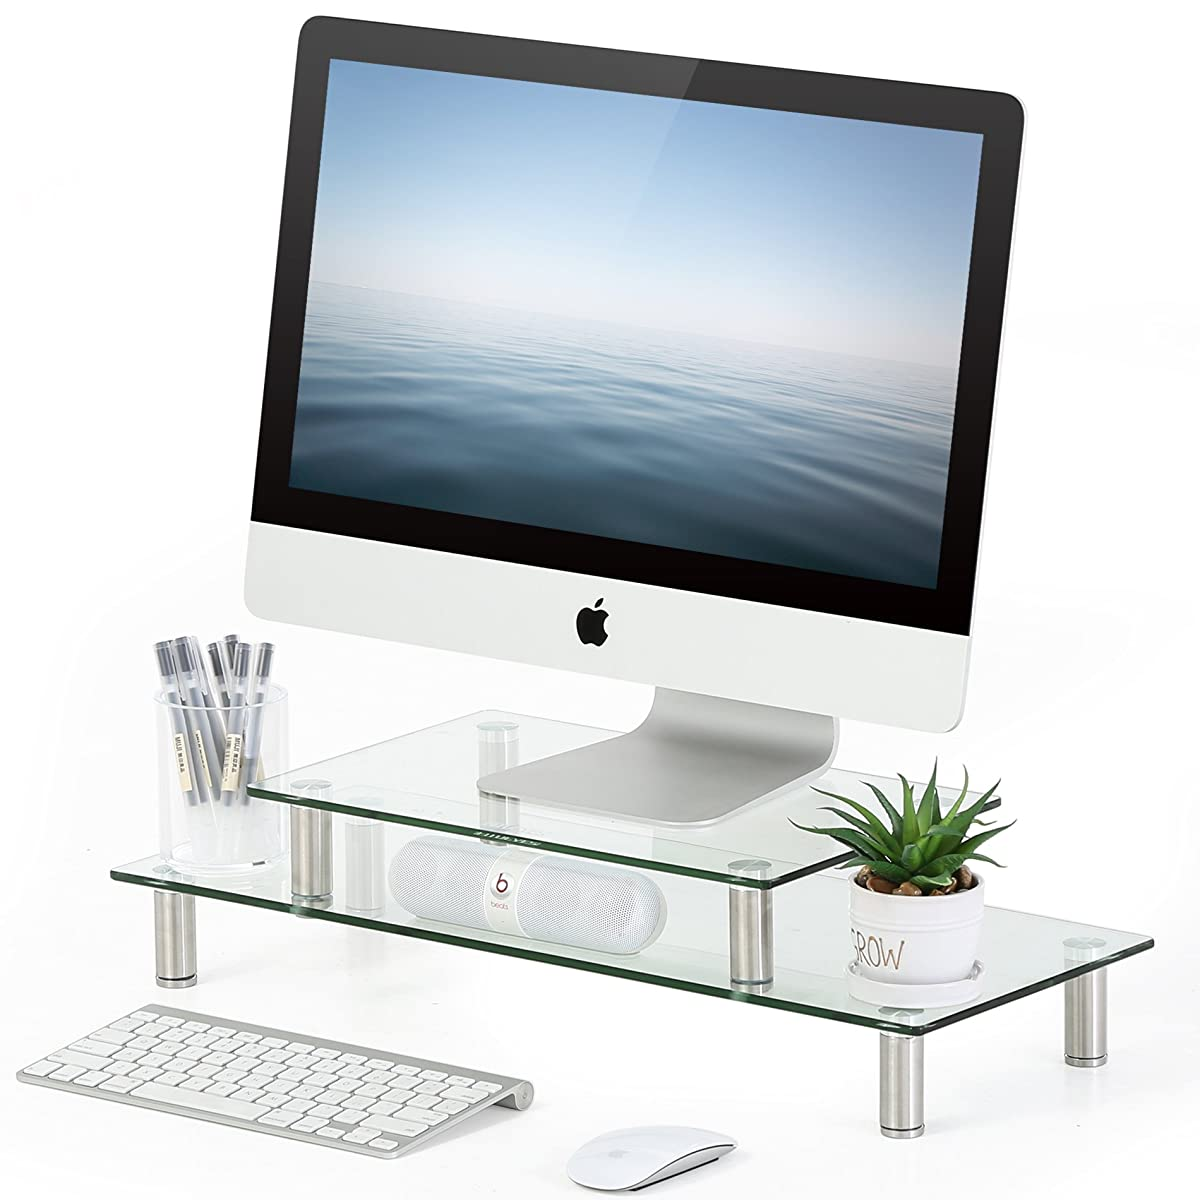 FITUEYES Clear Tempered Glass Computer Monitor Riser with Height Adjustable Multi Media Desktop Stand for Flat Screen LCD LED TV, Laptop/Notebook/Xbox,DT206002GC